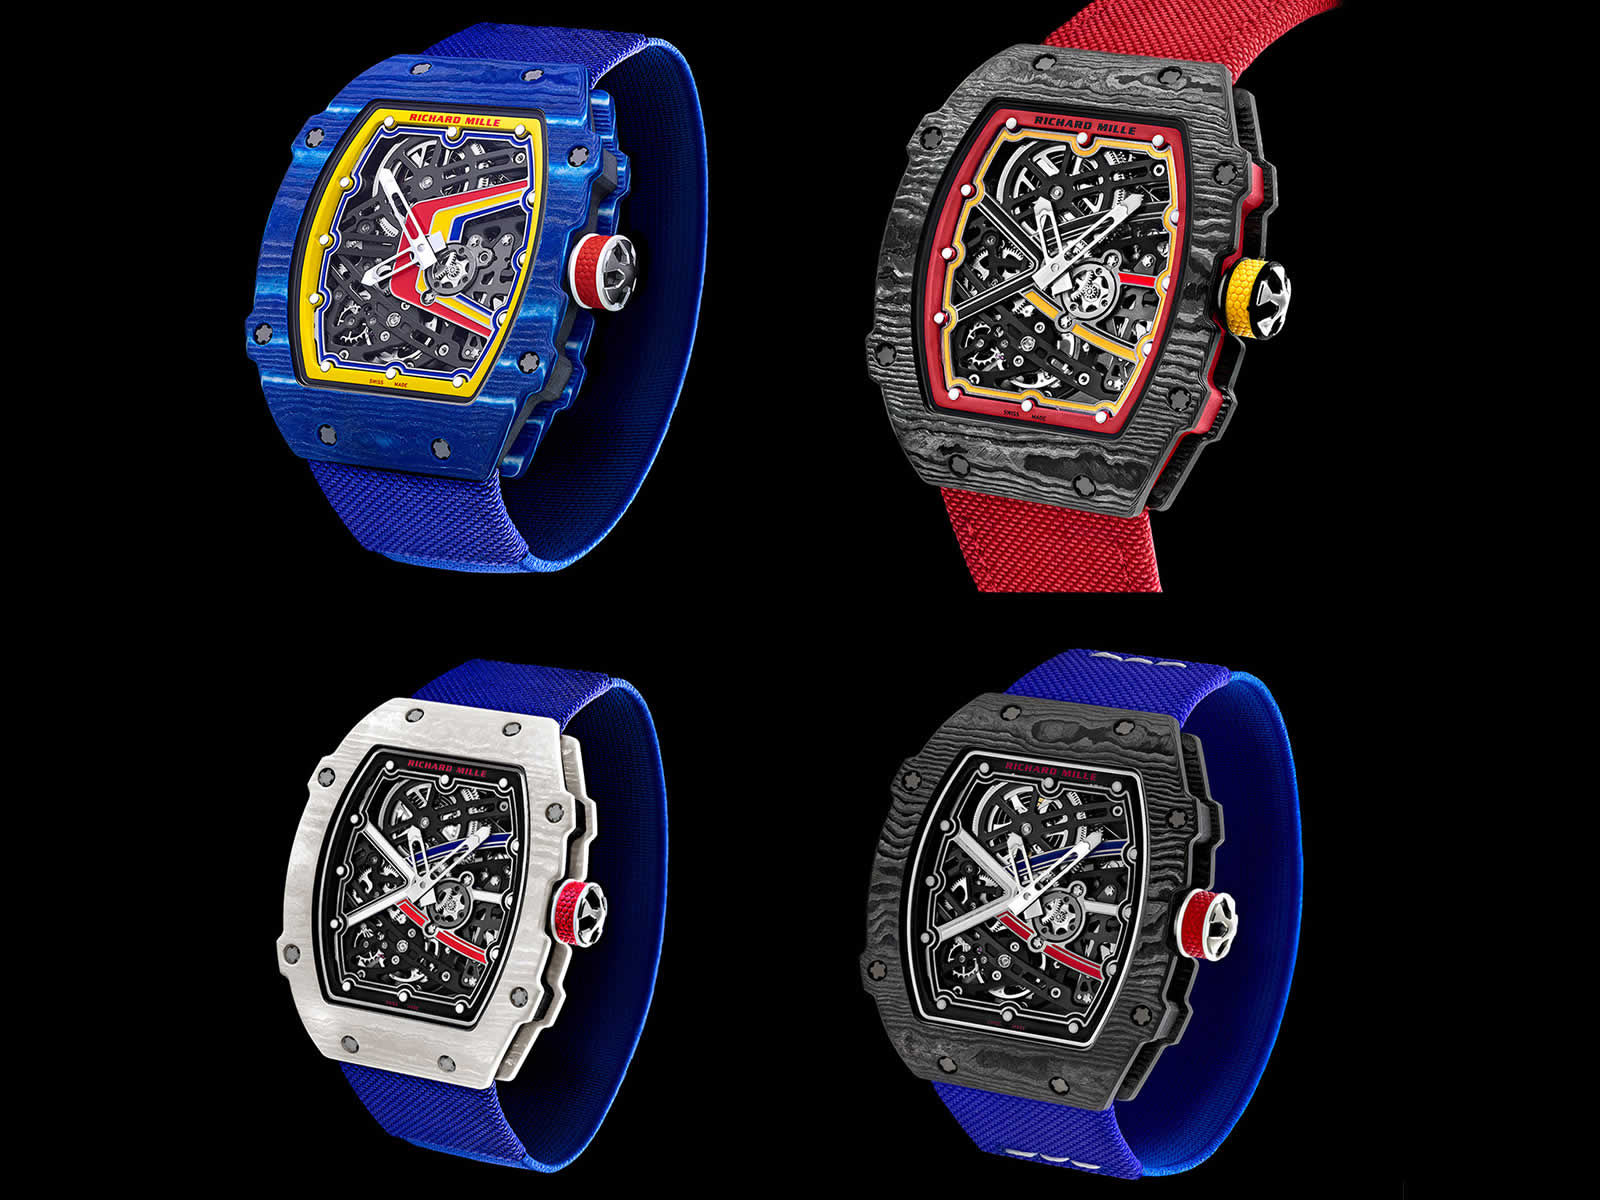 rm-67-02-richard-mille-new-versions-1.jpg